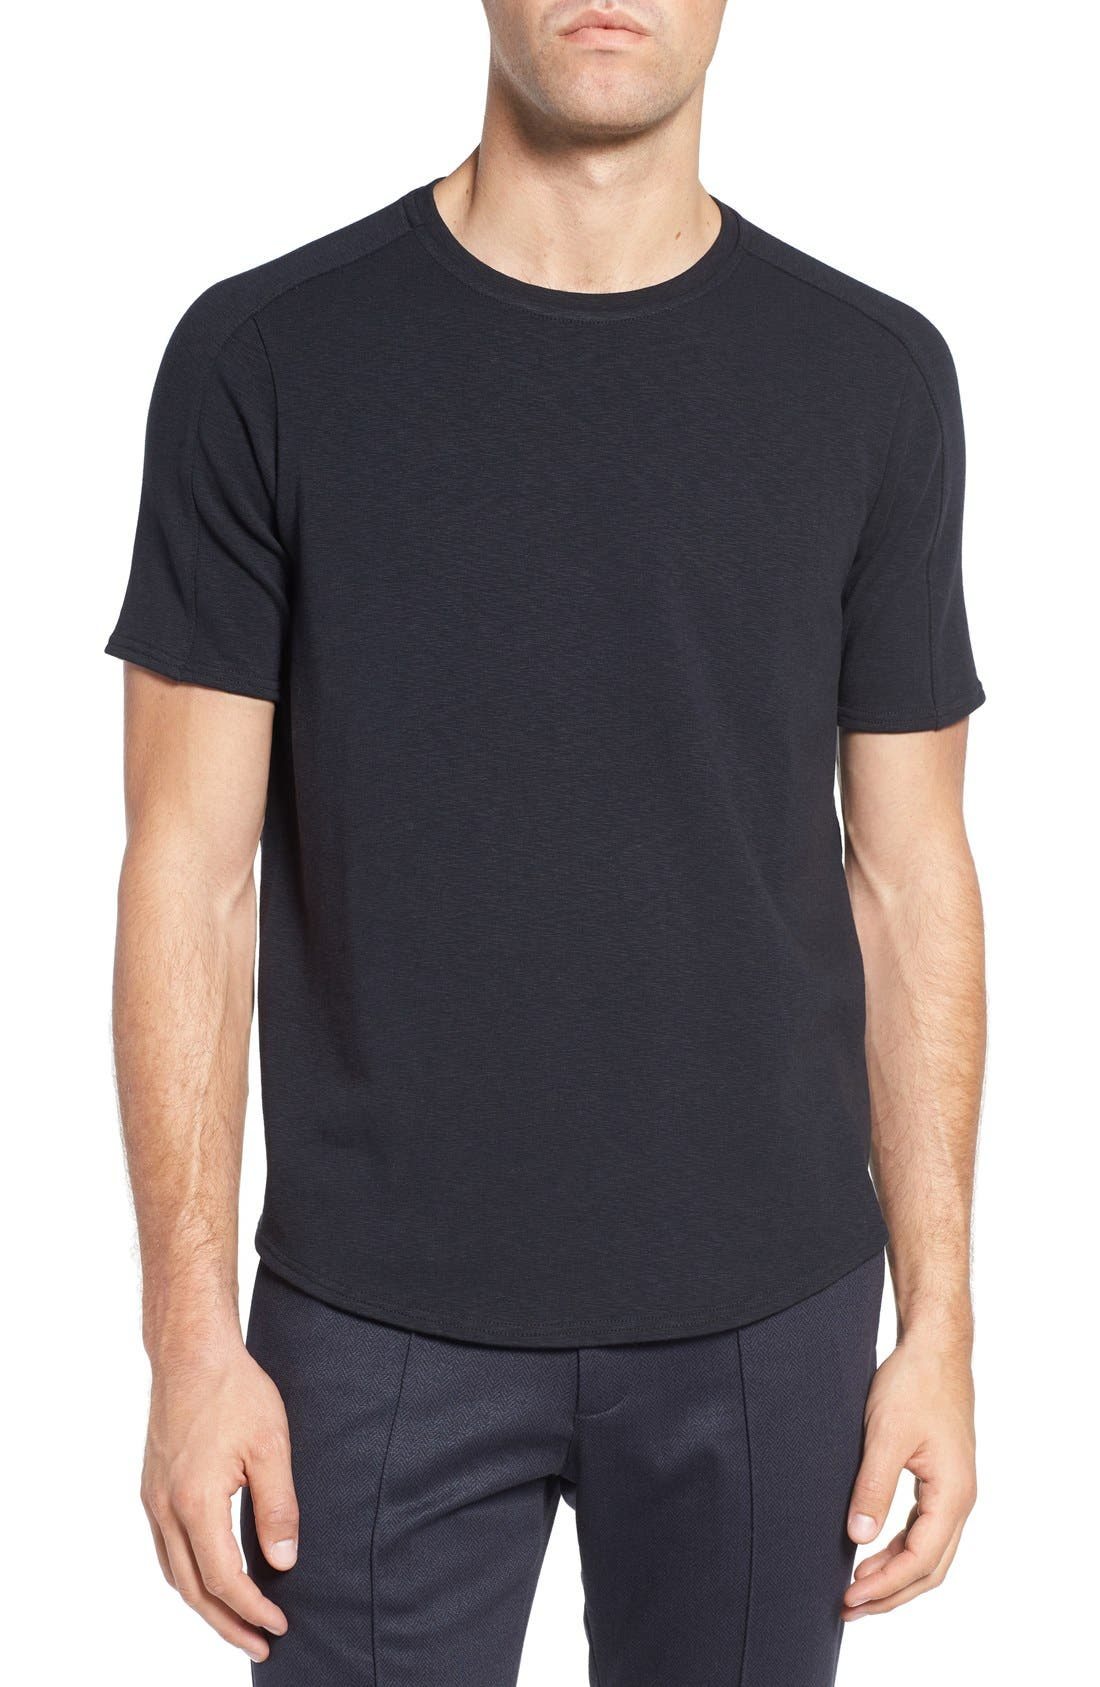 Douglas Cotton Blend T-Shirt,                         Main,                         color, 001